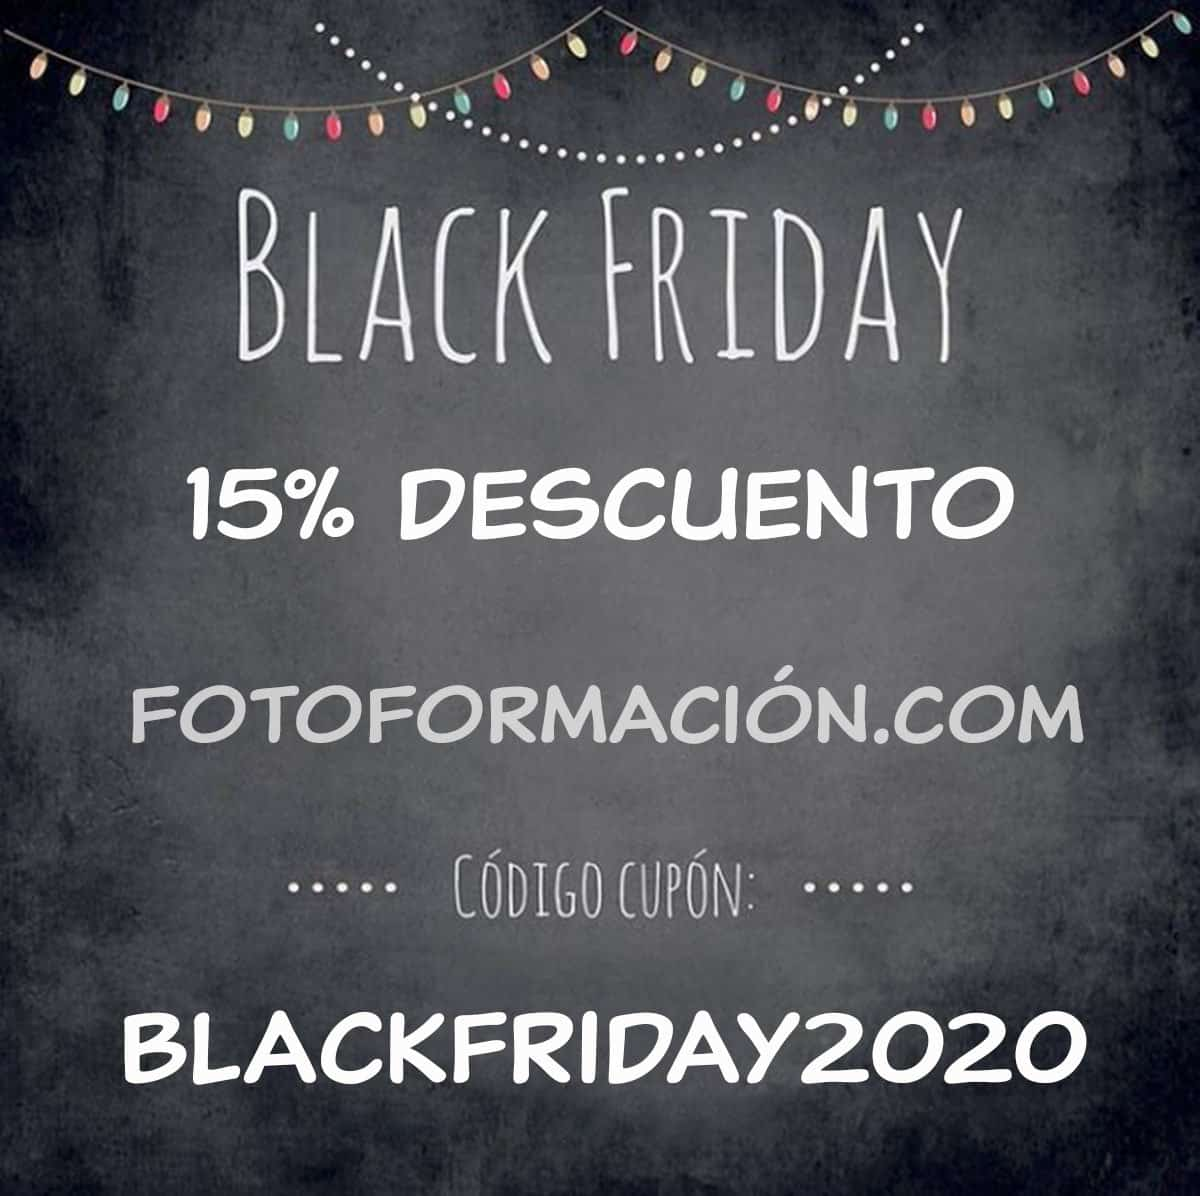 Black friday Foto 2020